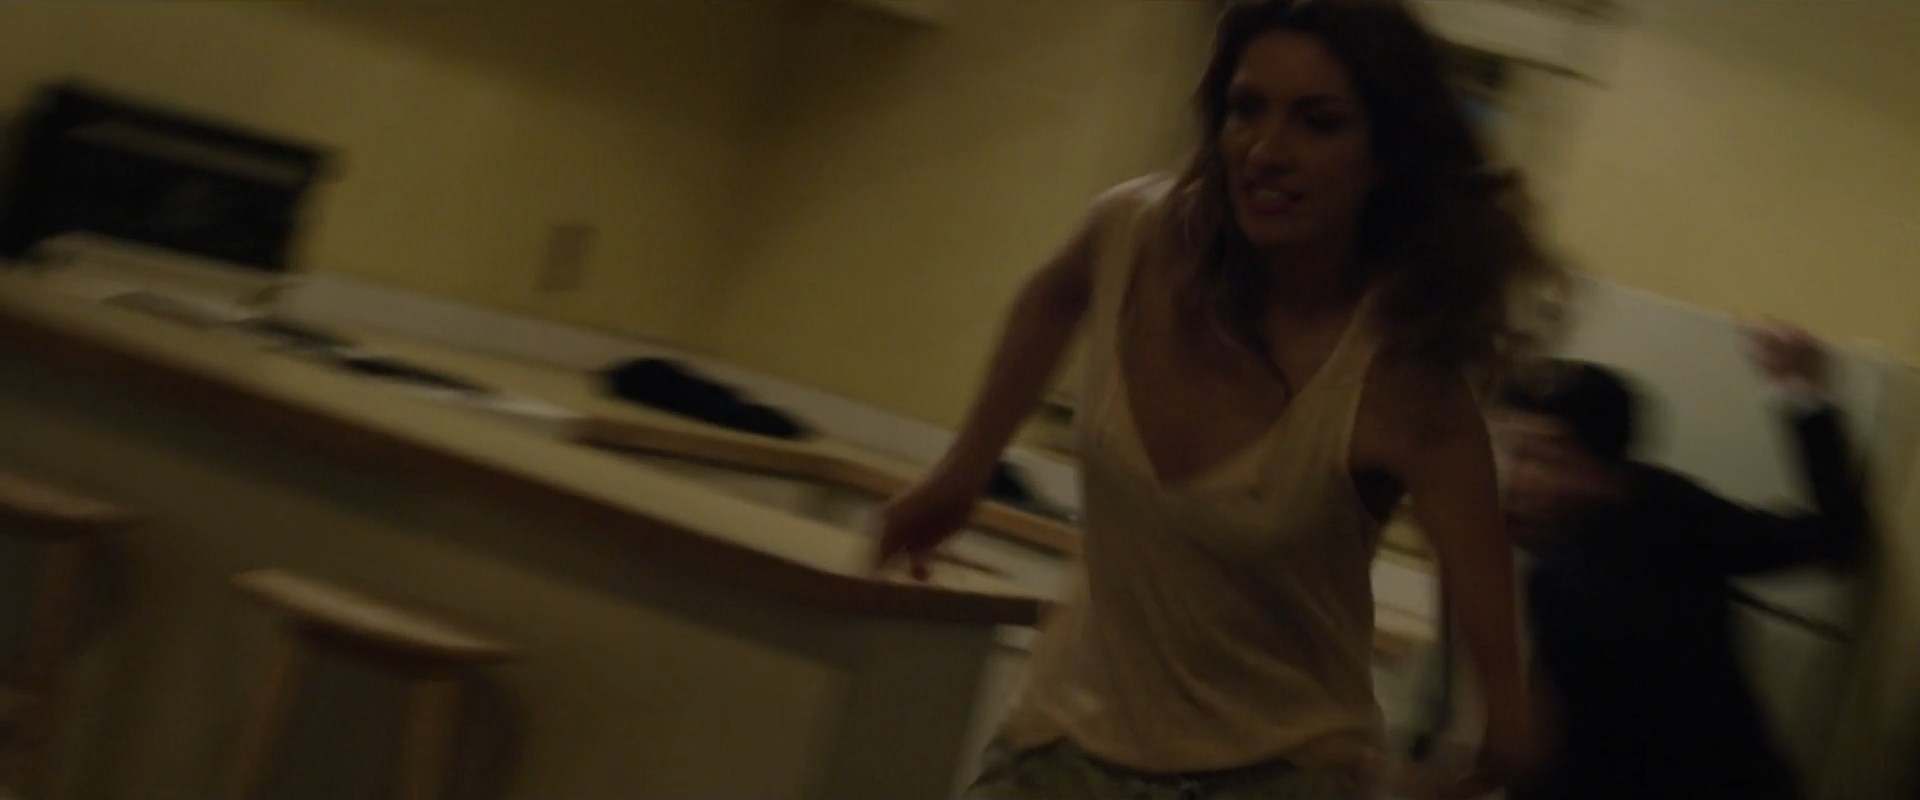 Dawn Olivieri - Darc (2018) HD 1080p